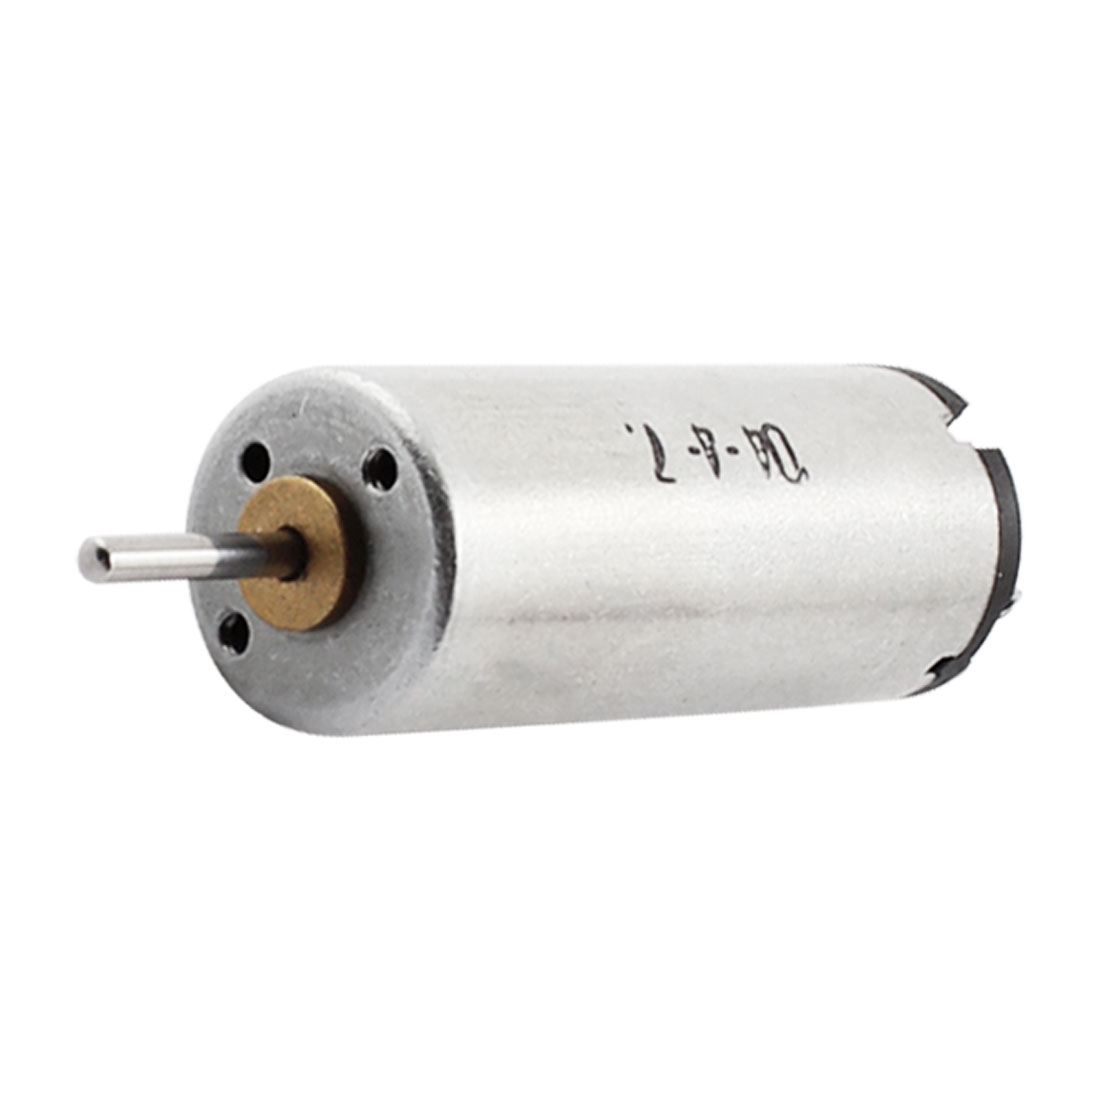 3V 3000RPM Micro High-power DC Motor 1230 N60-2535 12mmx40mm